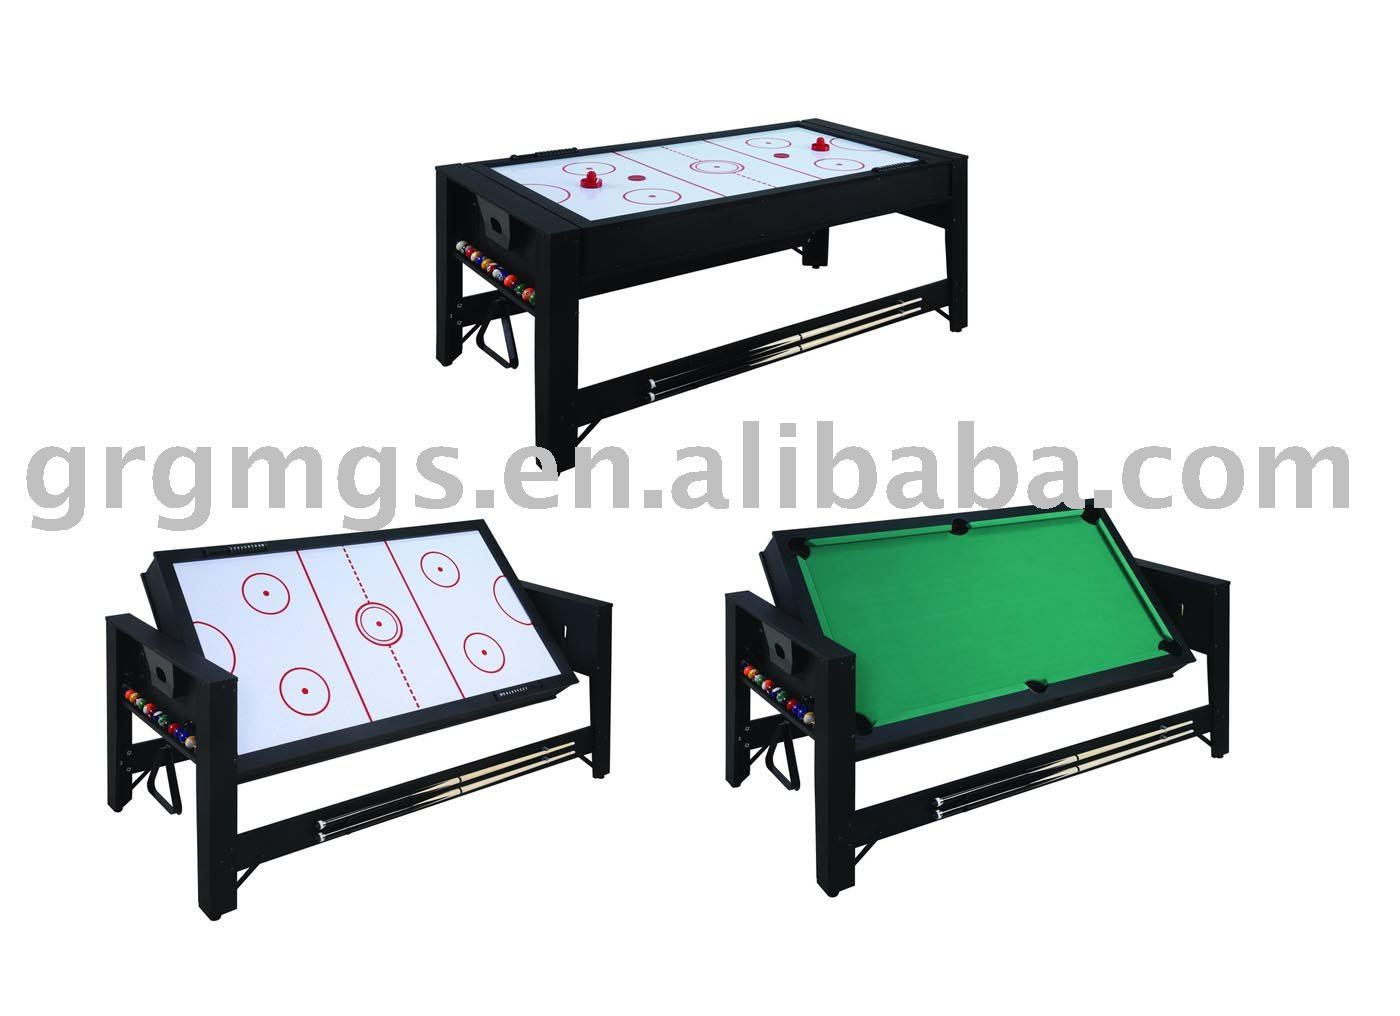 Flip Game Table, Flip Game Table Suppliers And Manufacturers At Alibaba.com